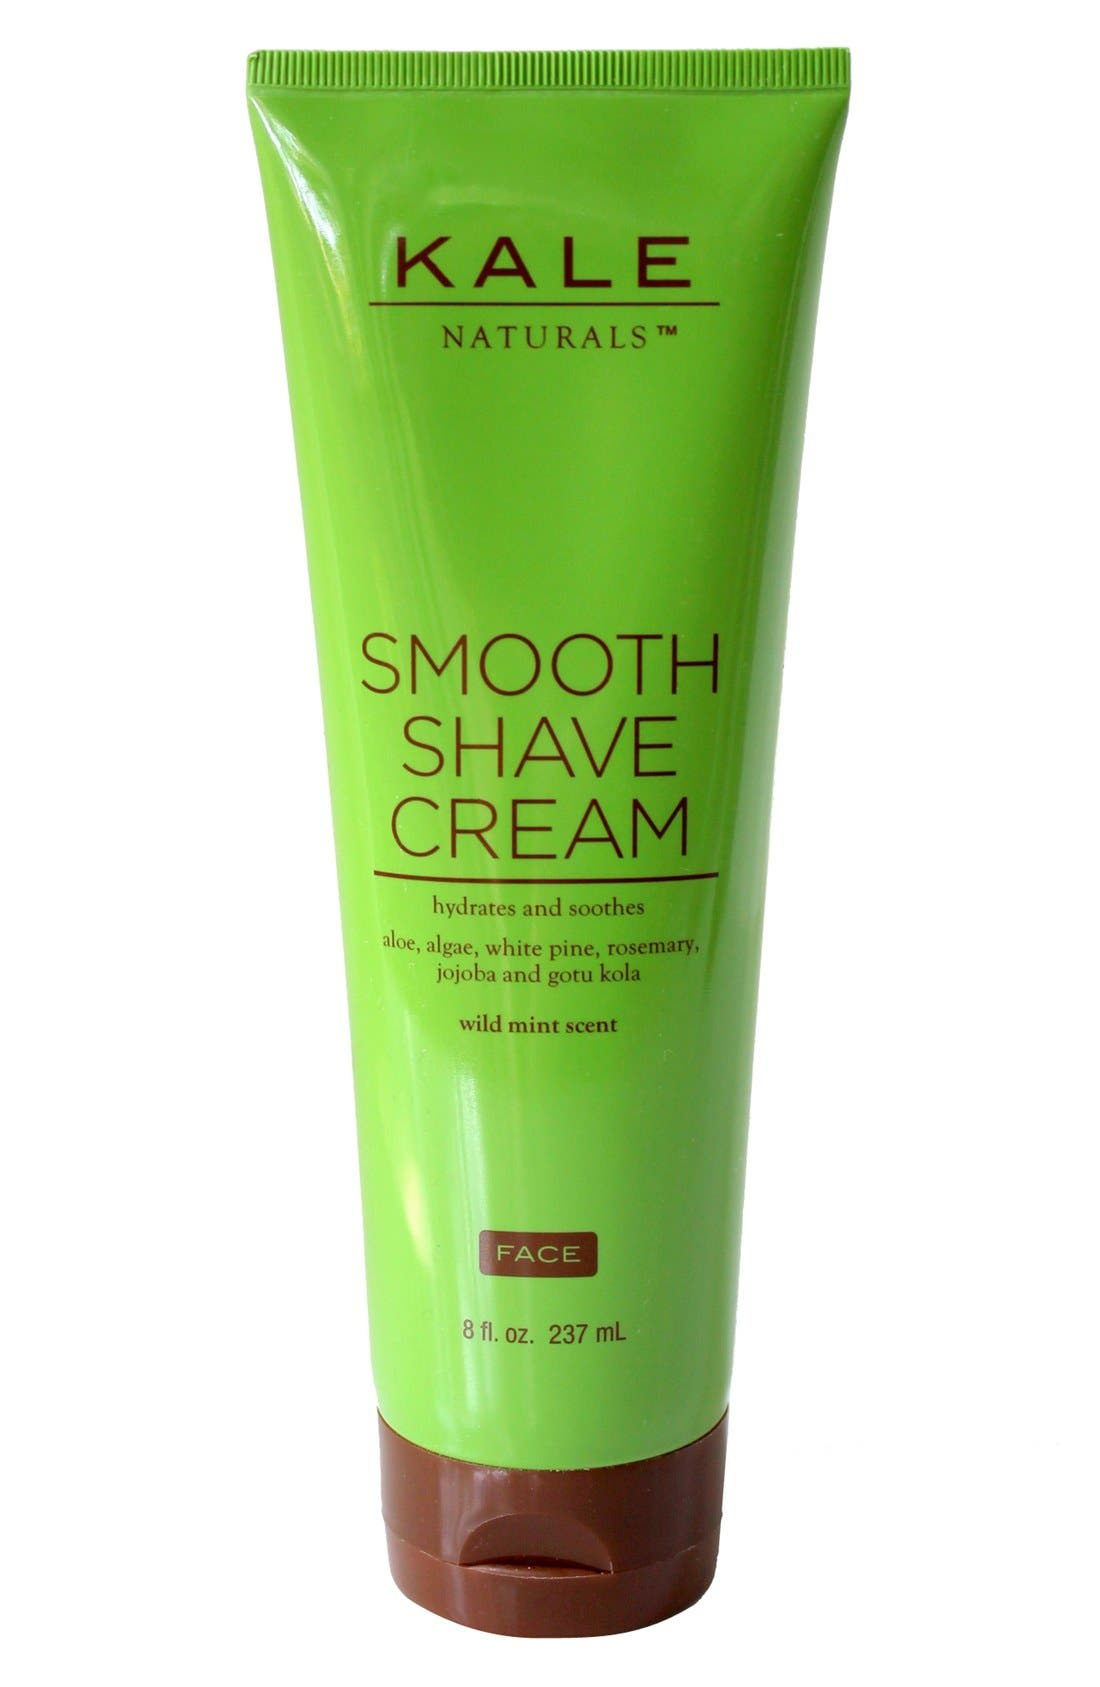 Kale Naturals® Smooth Shave Cream